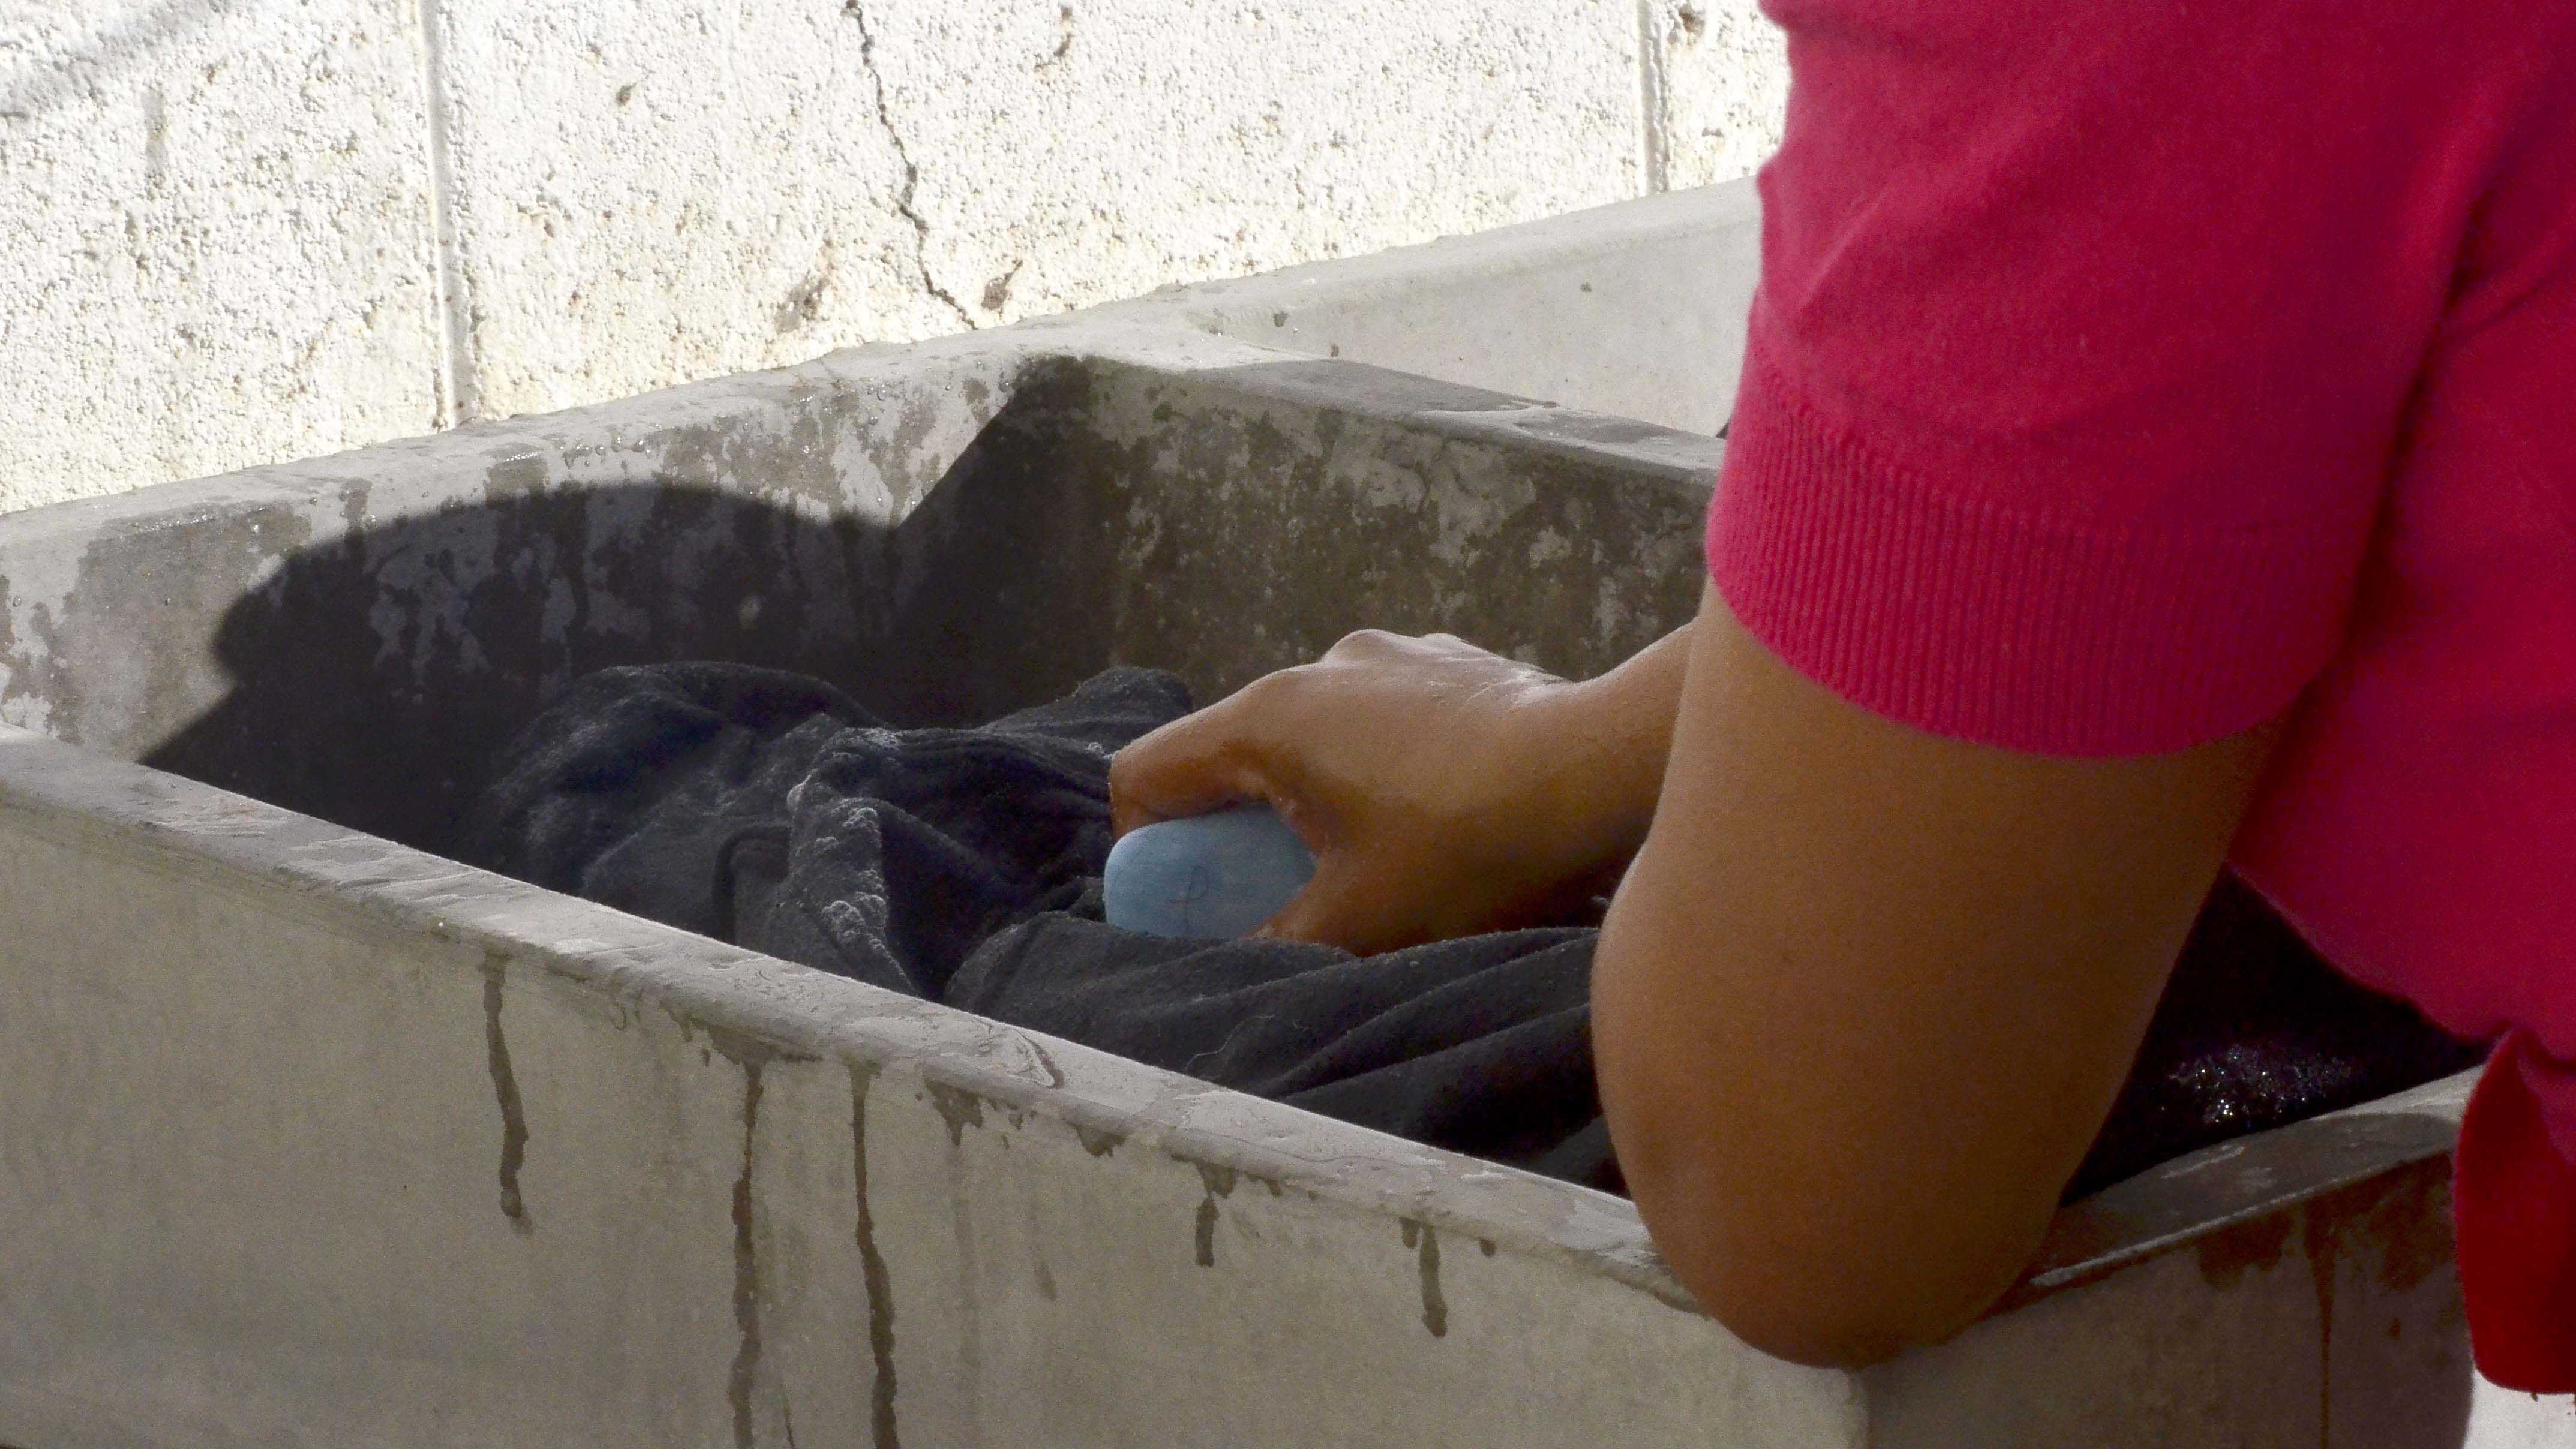 A female migrant uses bar soap to clean her clothes as a line of migrants wait their turn in the courtyard.